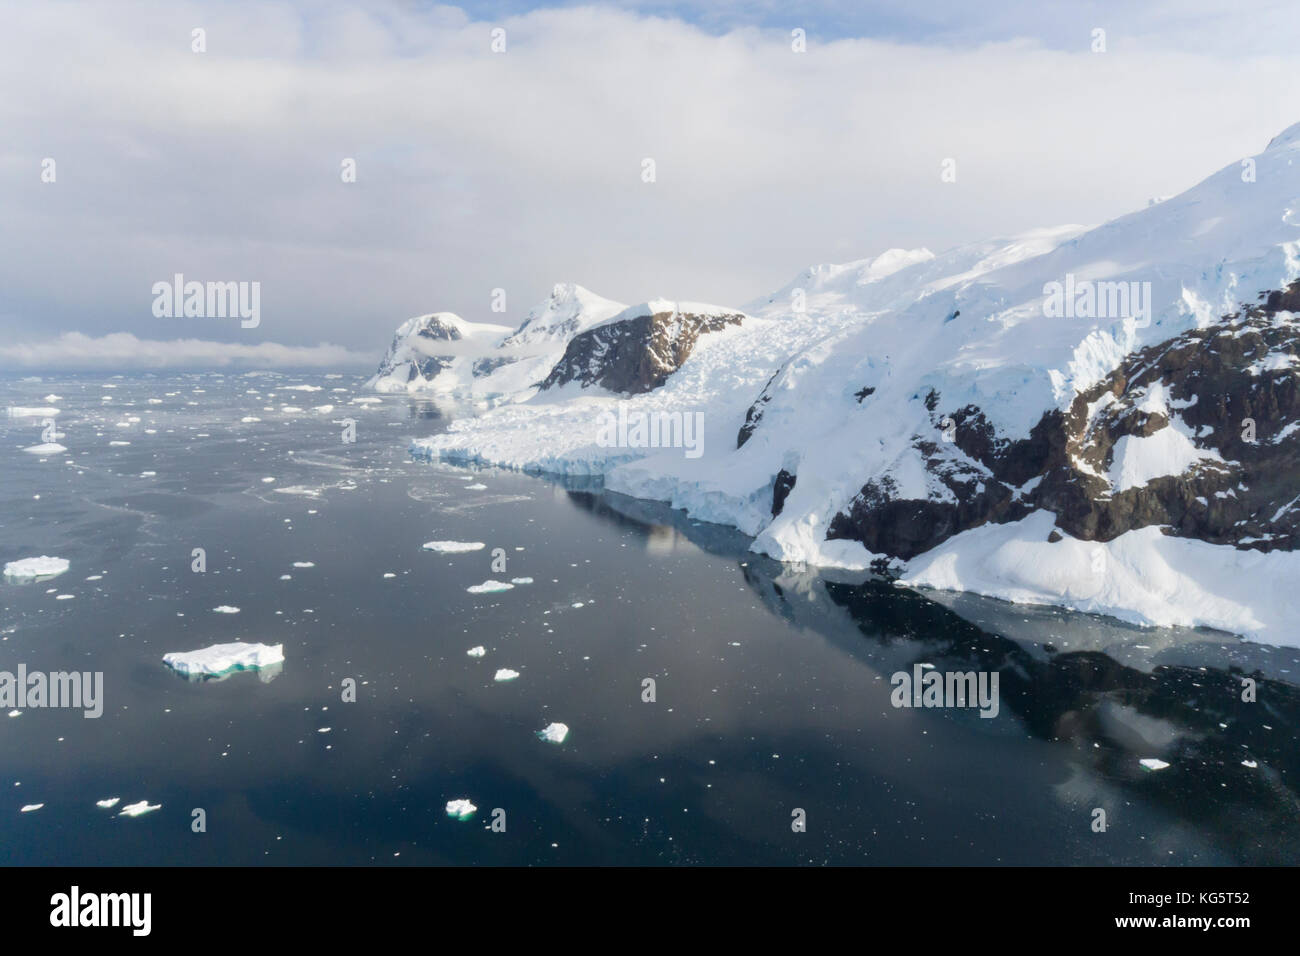 Aerial of mountains and water, Neko Harbor, Antarctica. - Stock Image